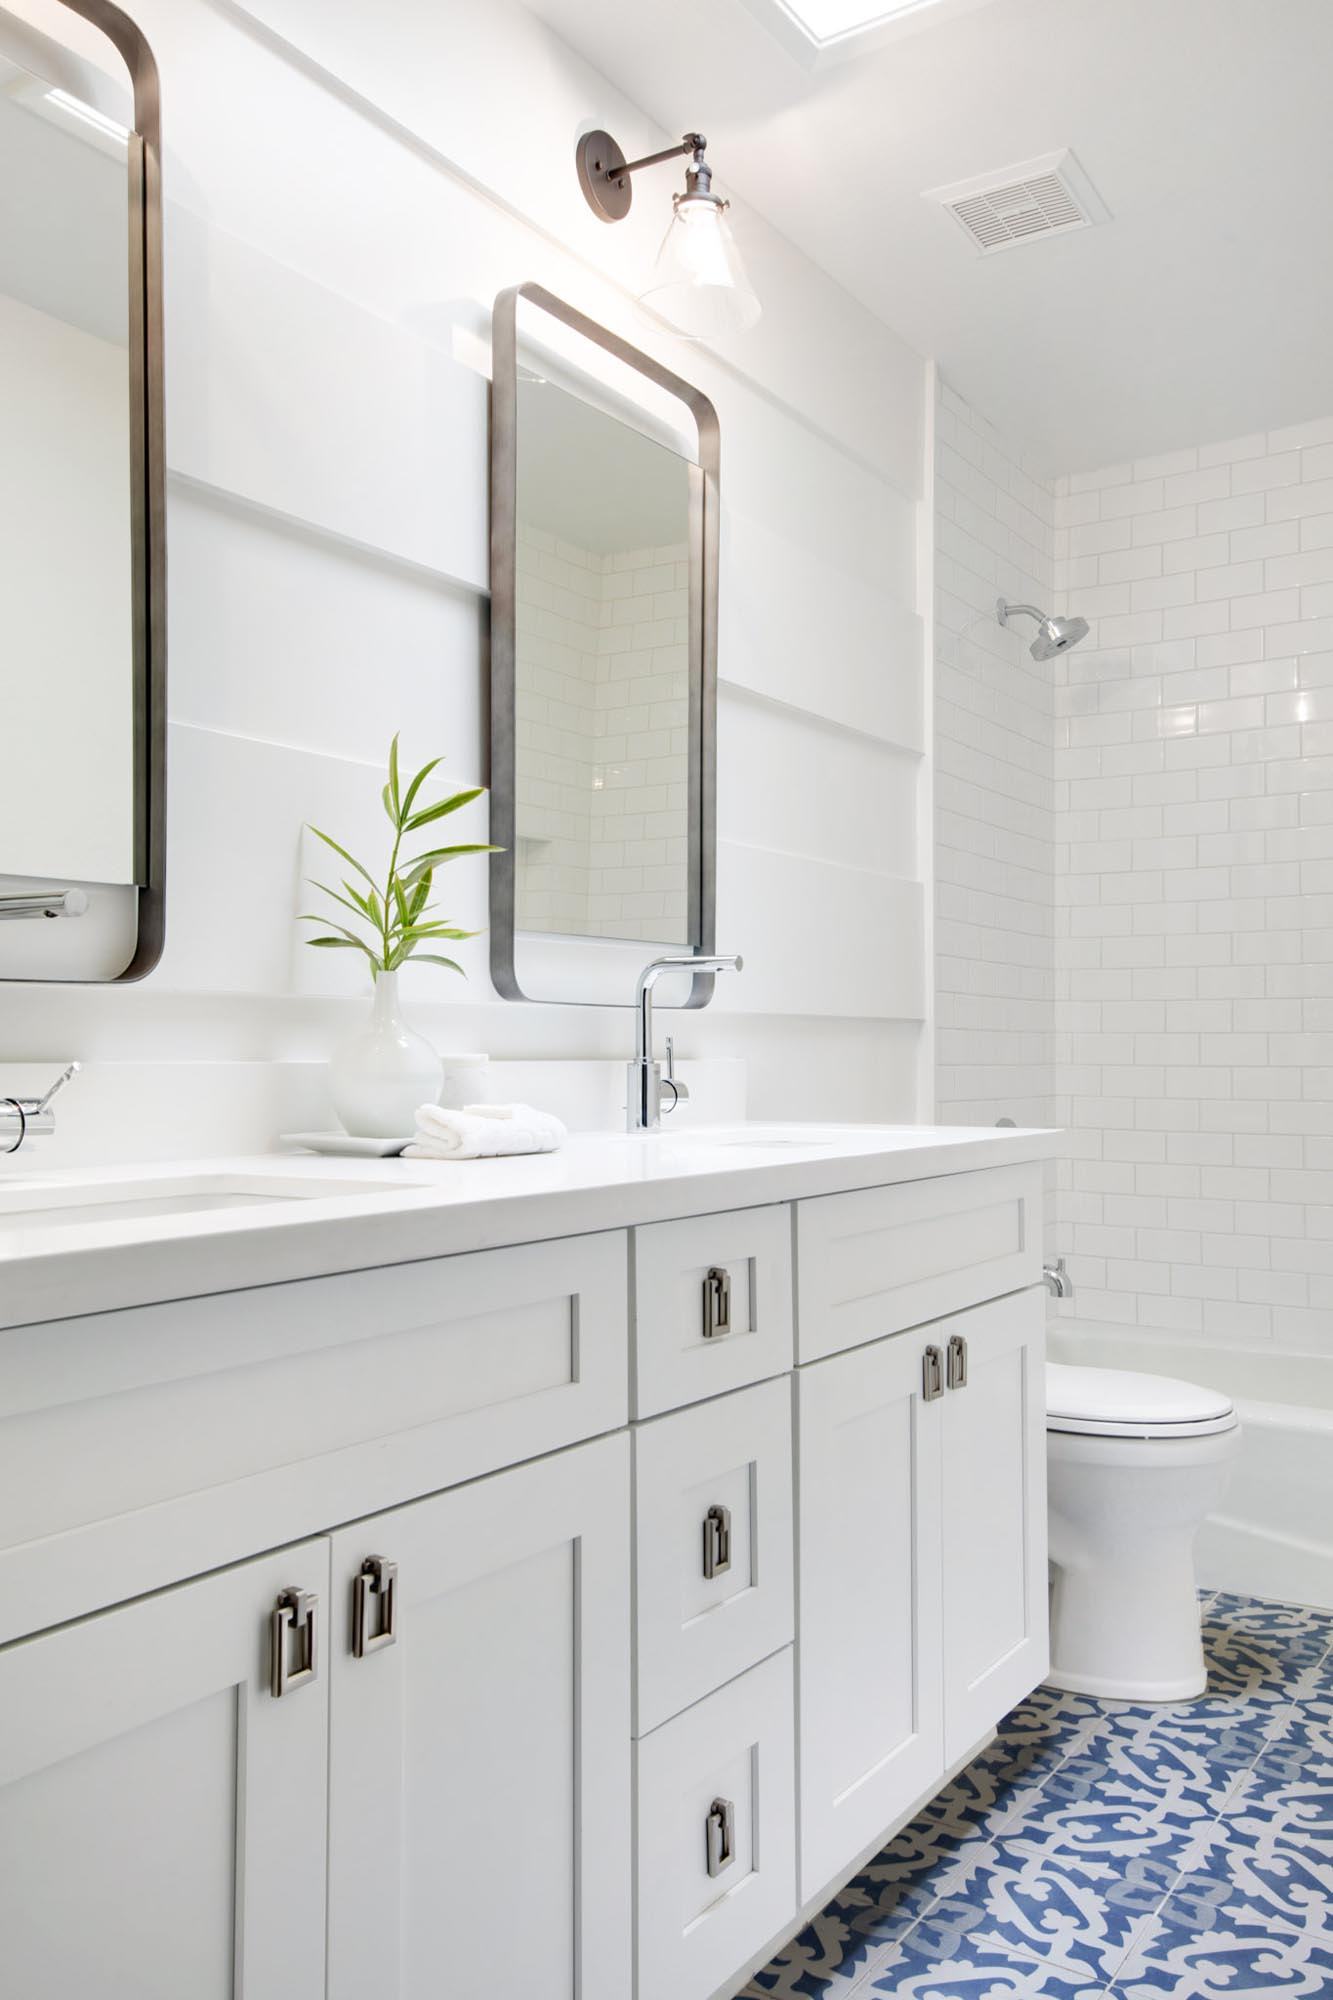 White toilet room with sink and mirrors